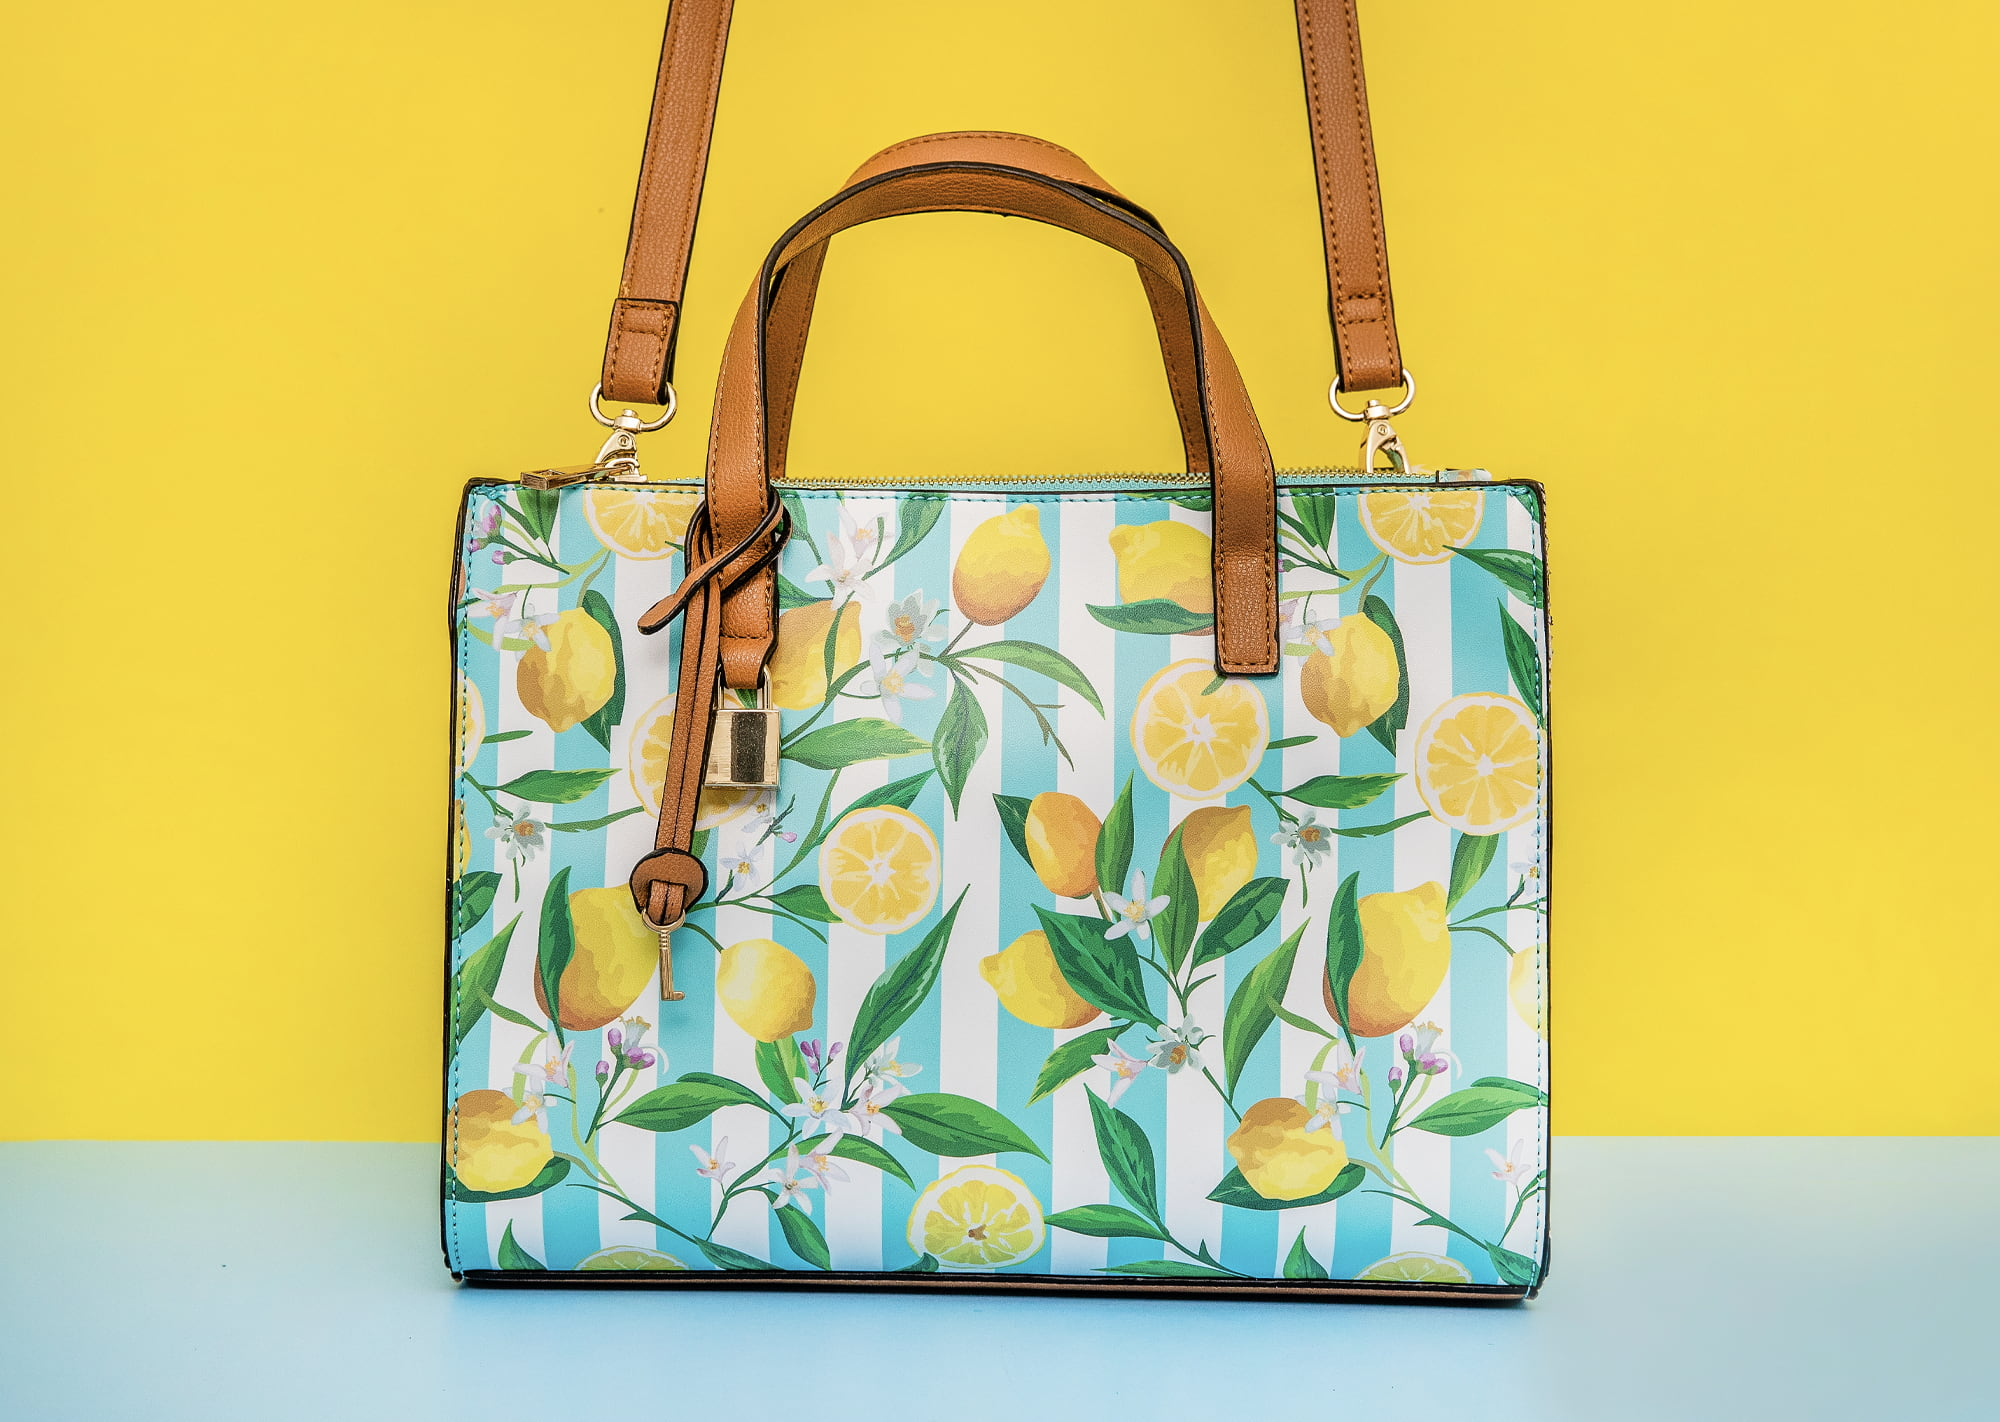 professional product photo of yellow and blue lemon purse